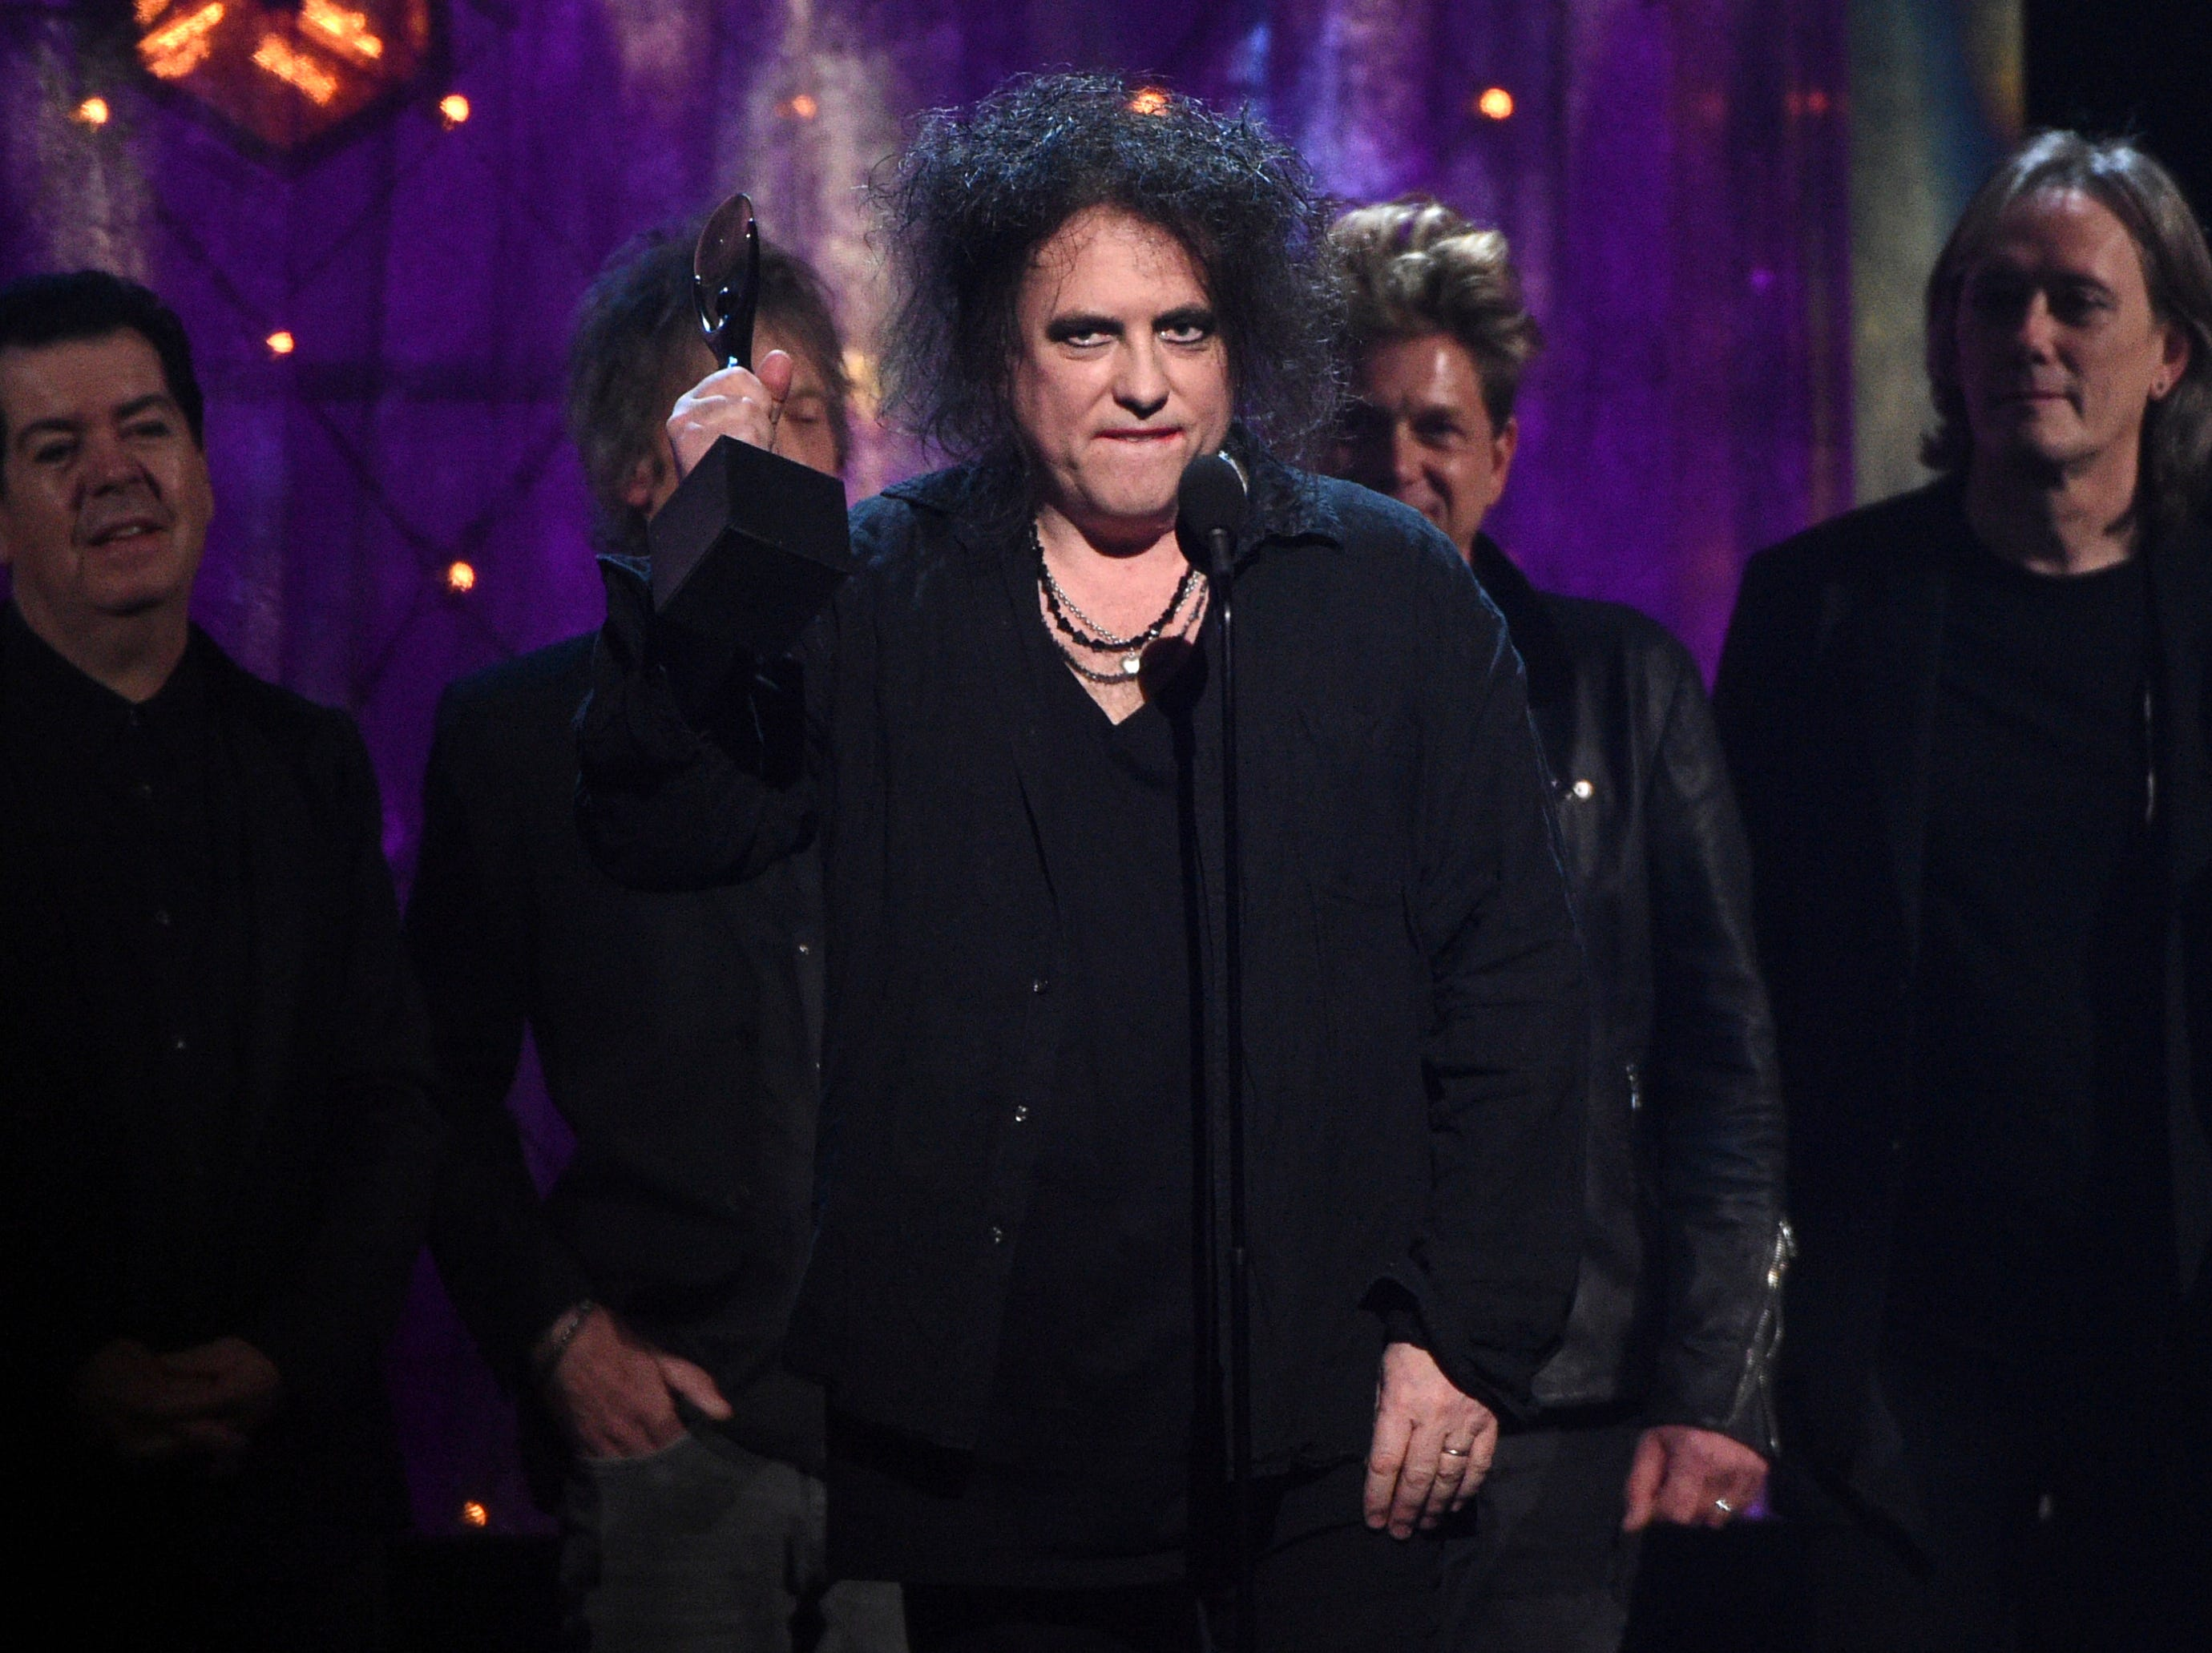 Robert Smith of The Cure accepts a trophy at the British band's induction.